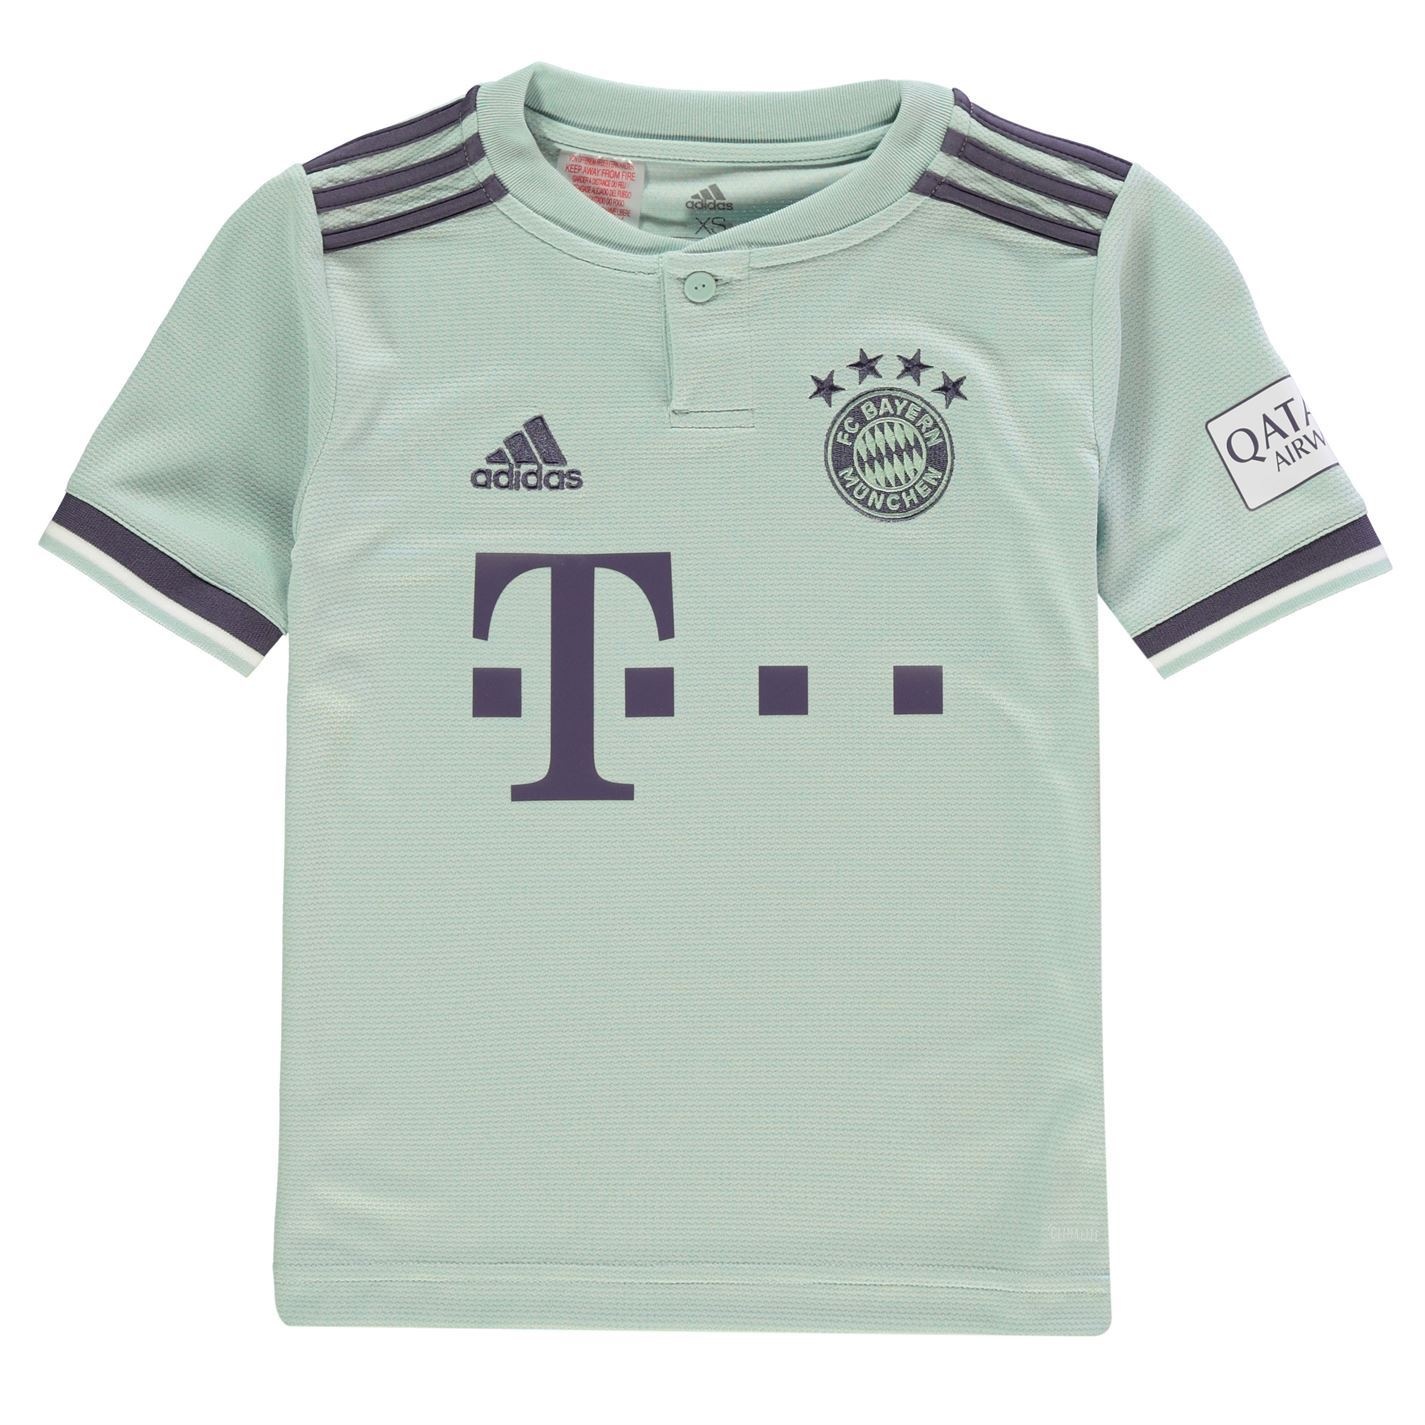 c66d73feb90 adidas Bayern Munich Away Jersey 2018 2019 Juniors Green Football Soccer  Shirt